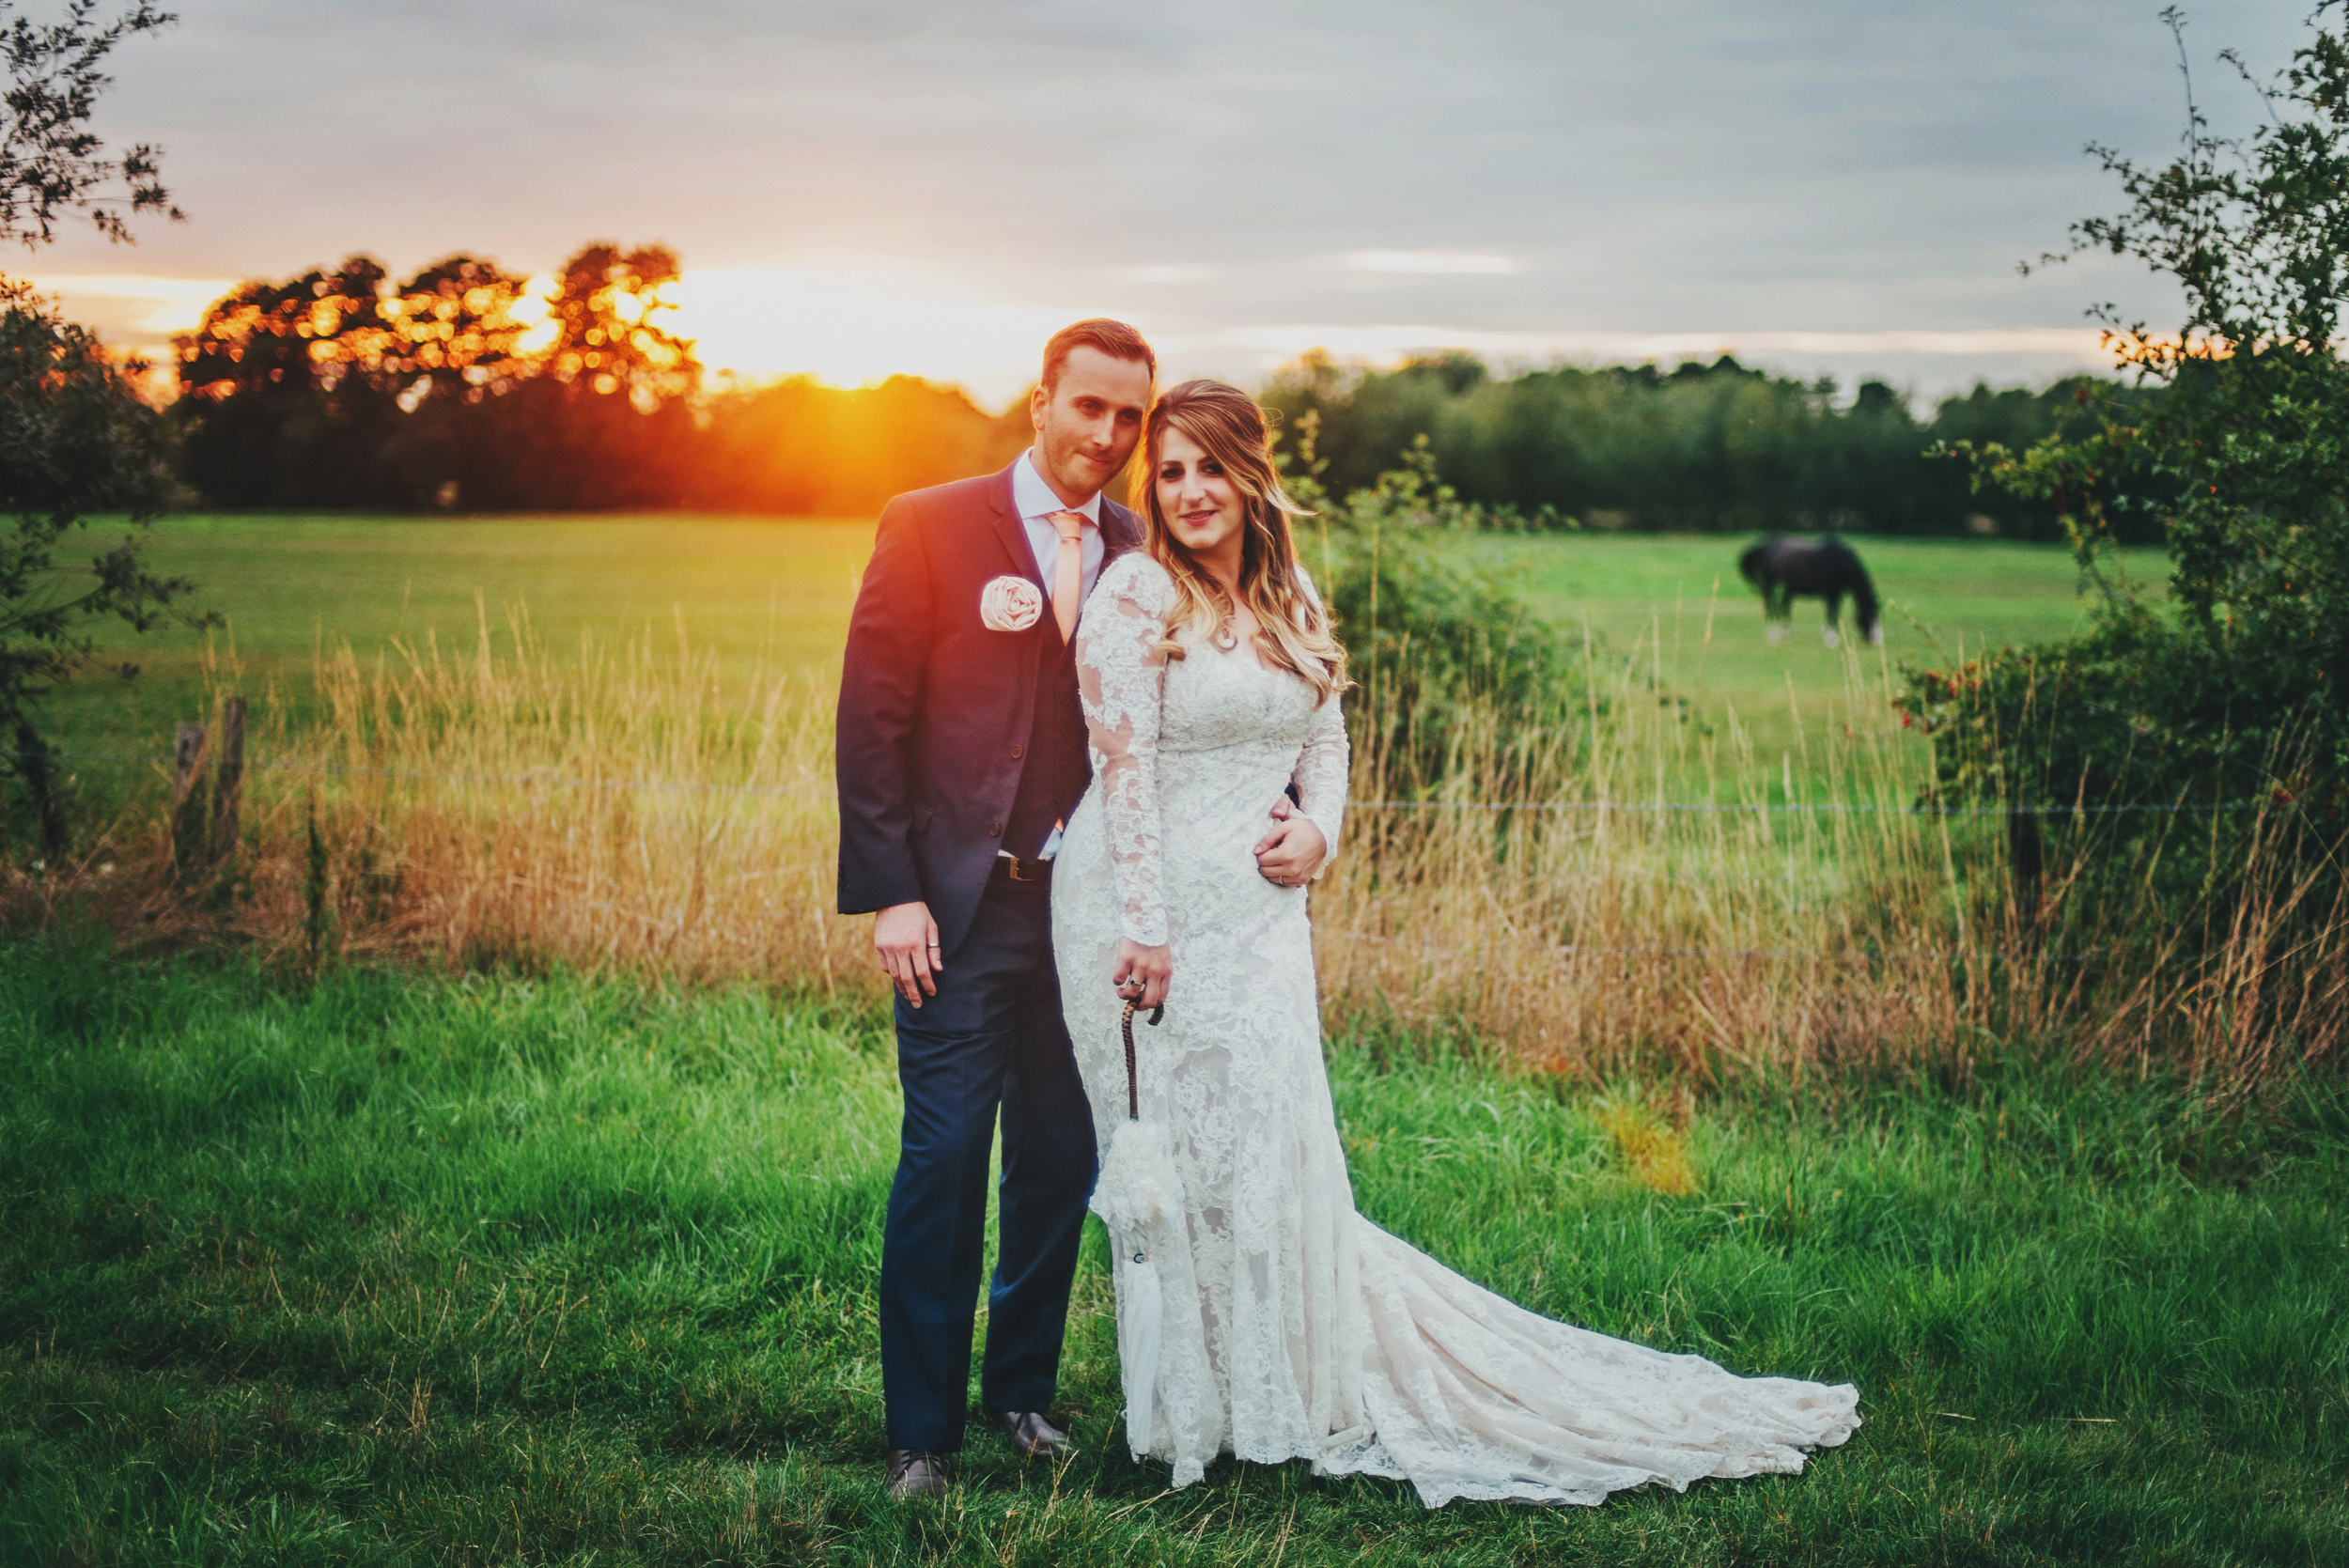 Rustic Bride Groom Sunset Essex UK Documentary Wedding Photographer